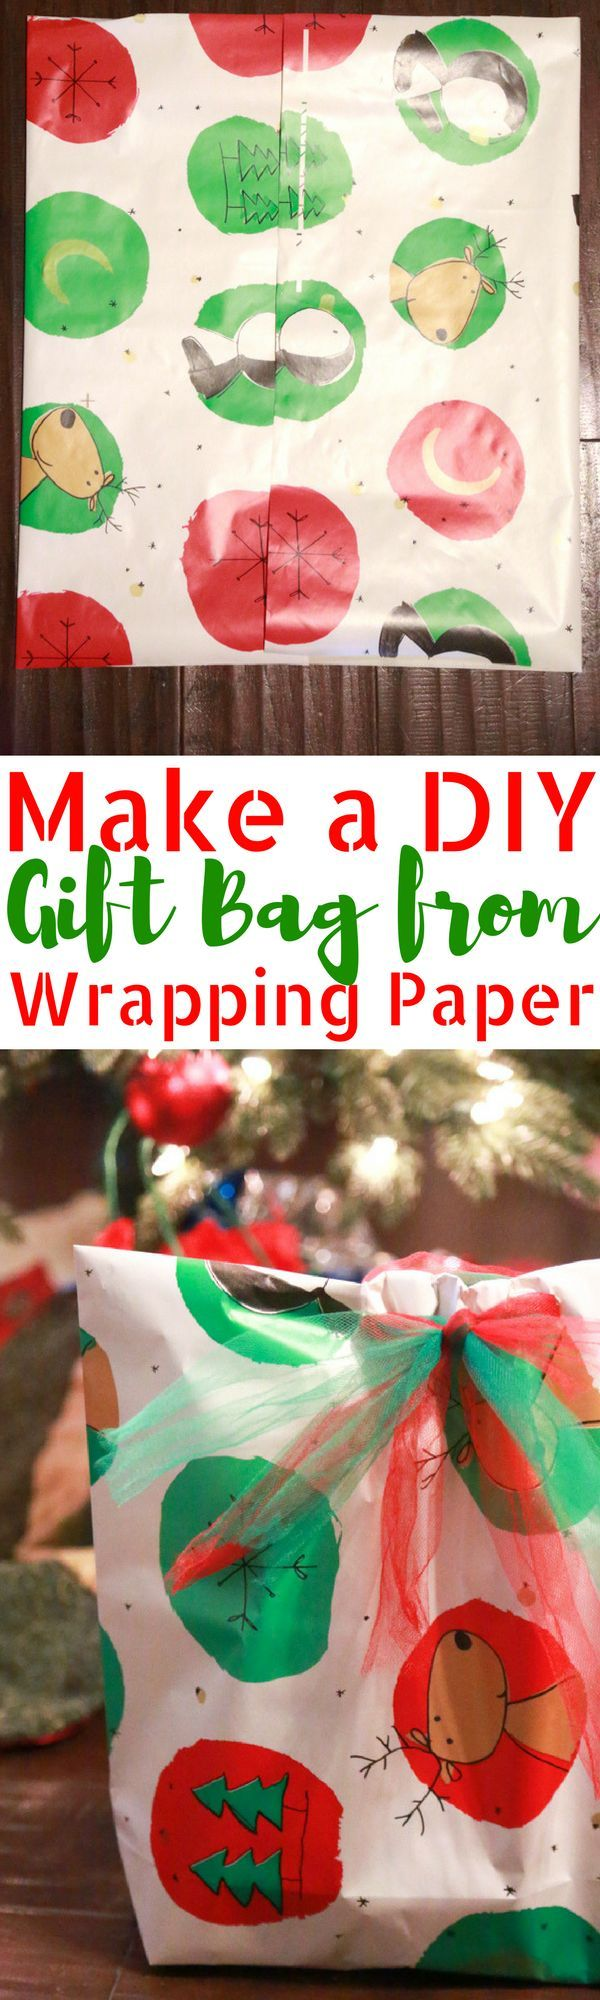 DIY Gift Bag from Wrapping Paper